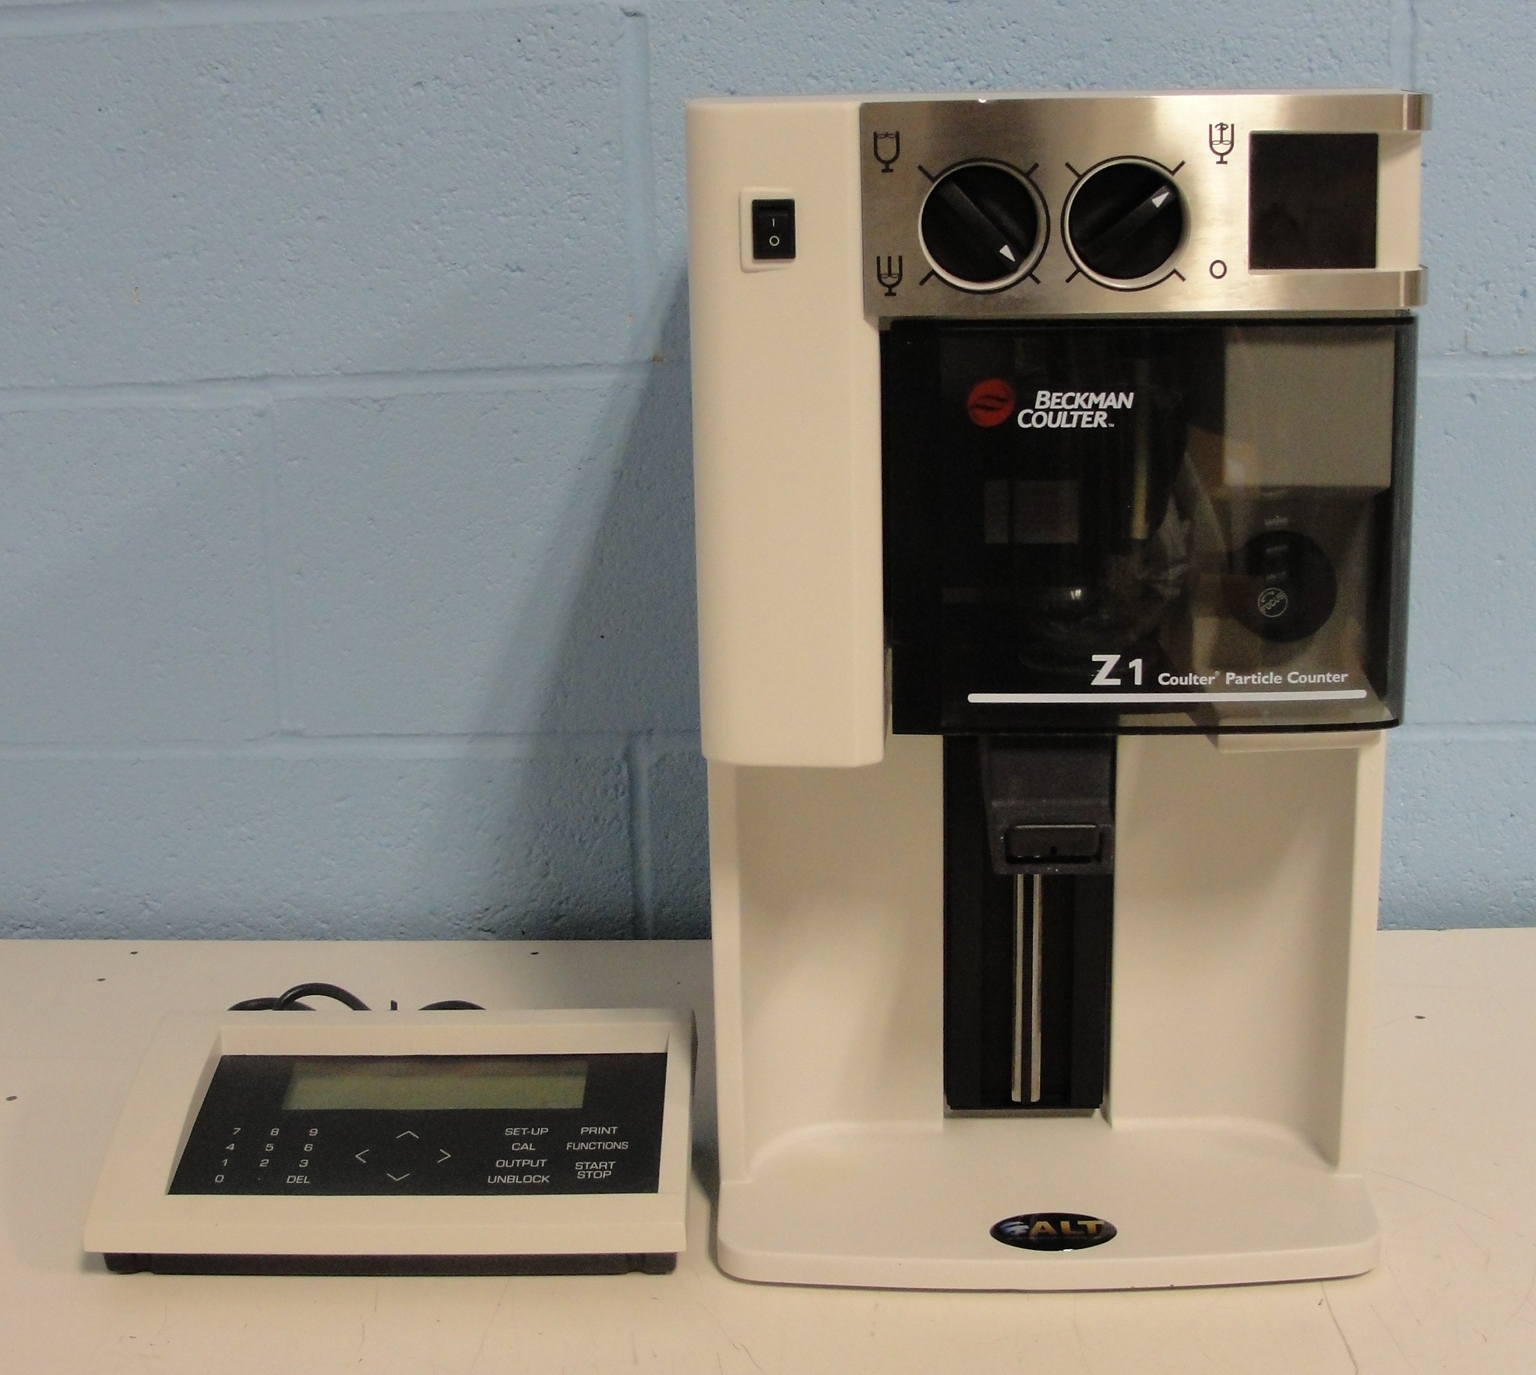 Beckman Coulter Z1 Particle Counter Model Z1 S Image